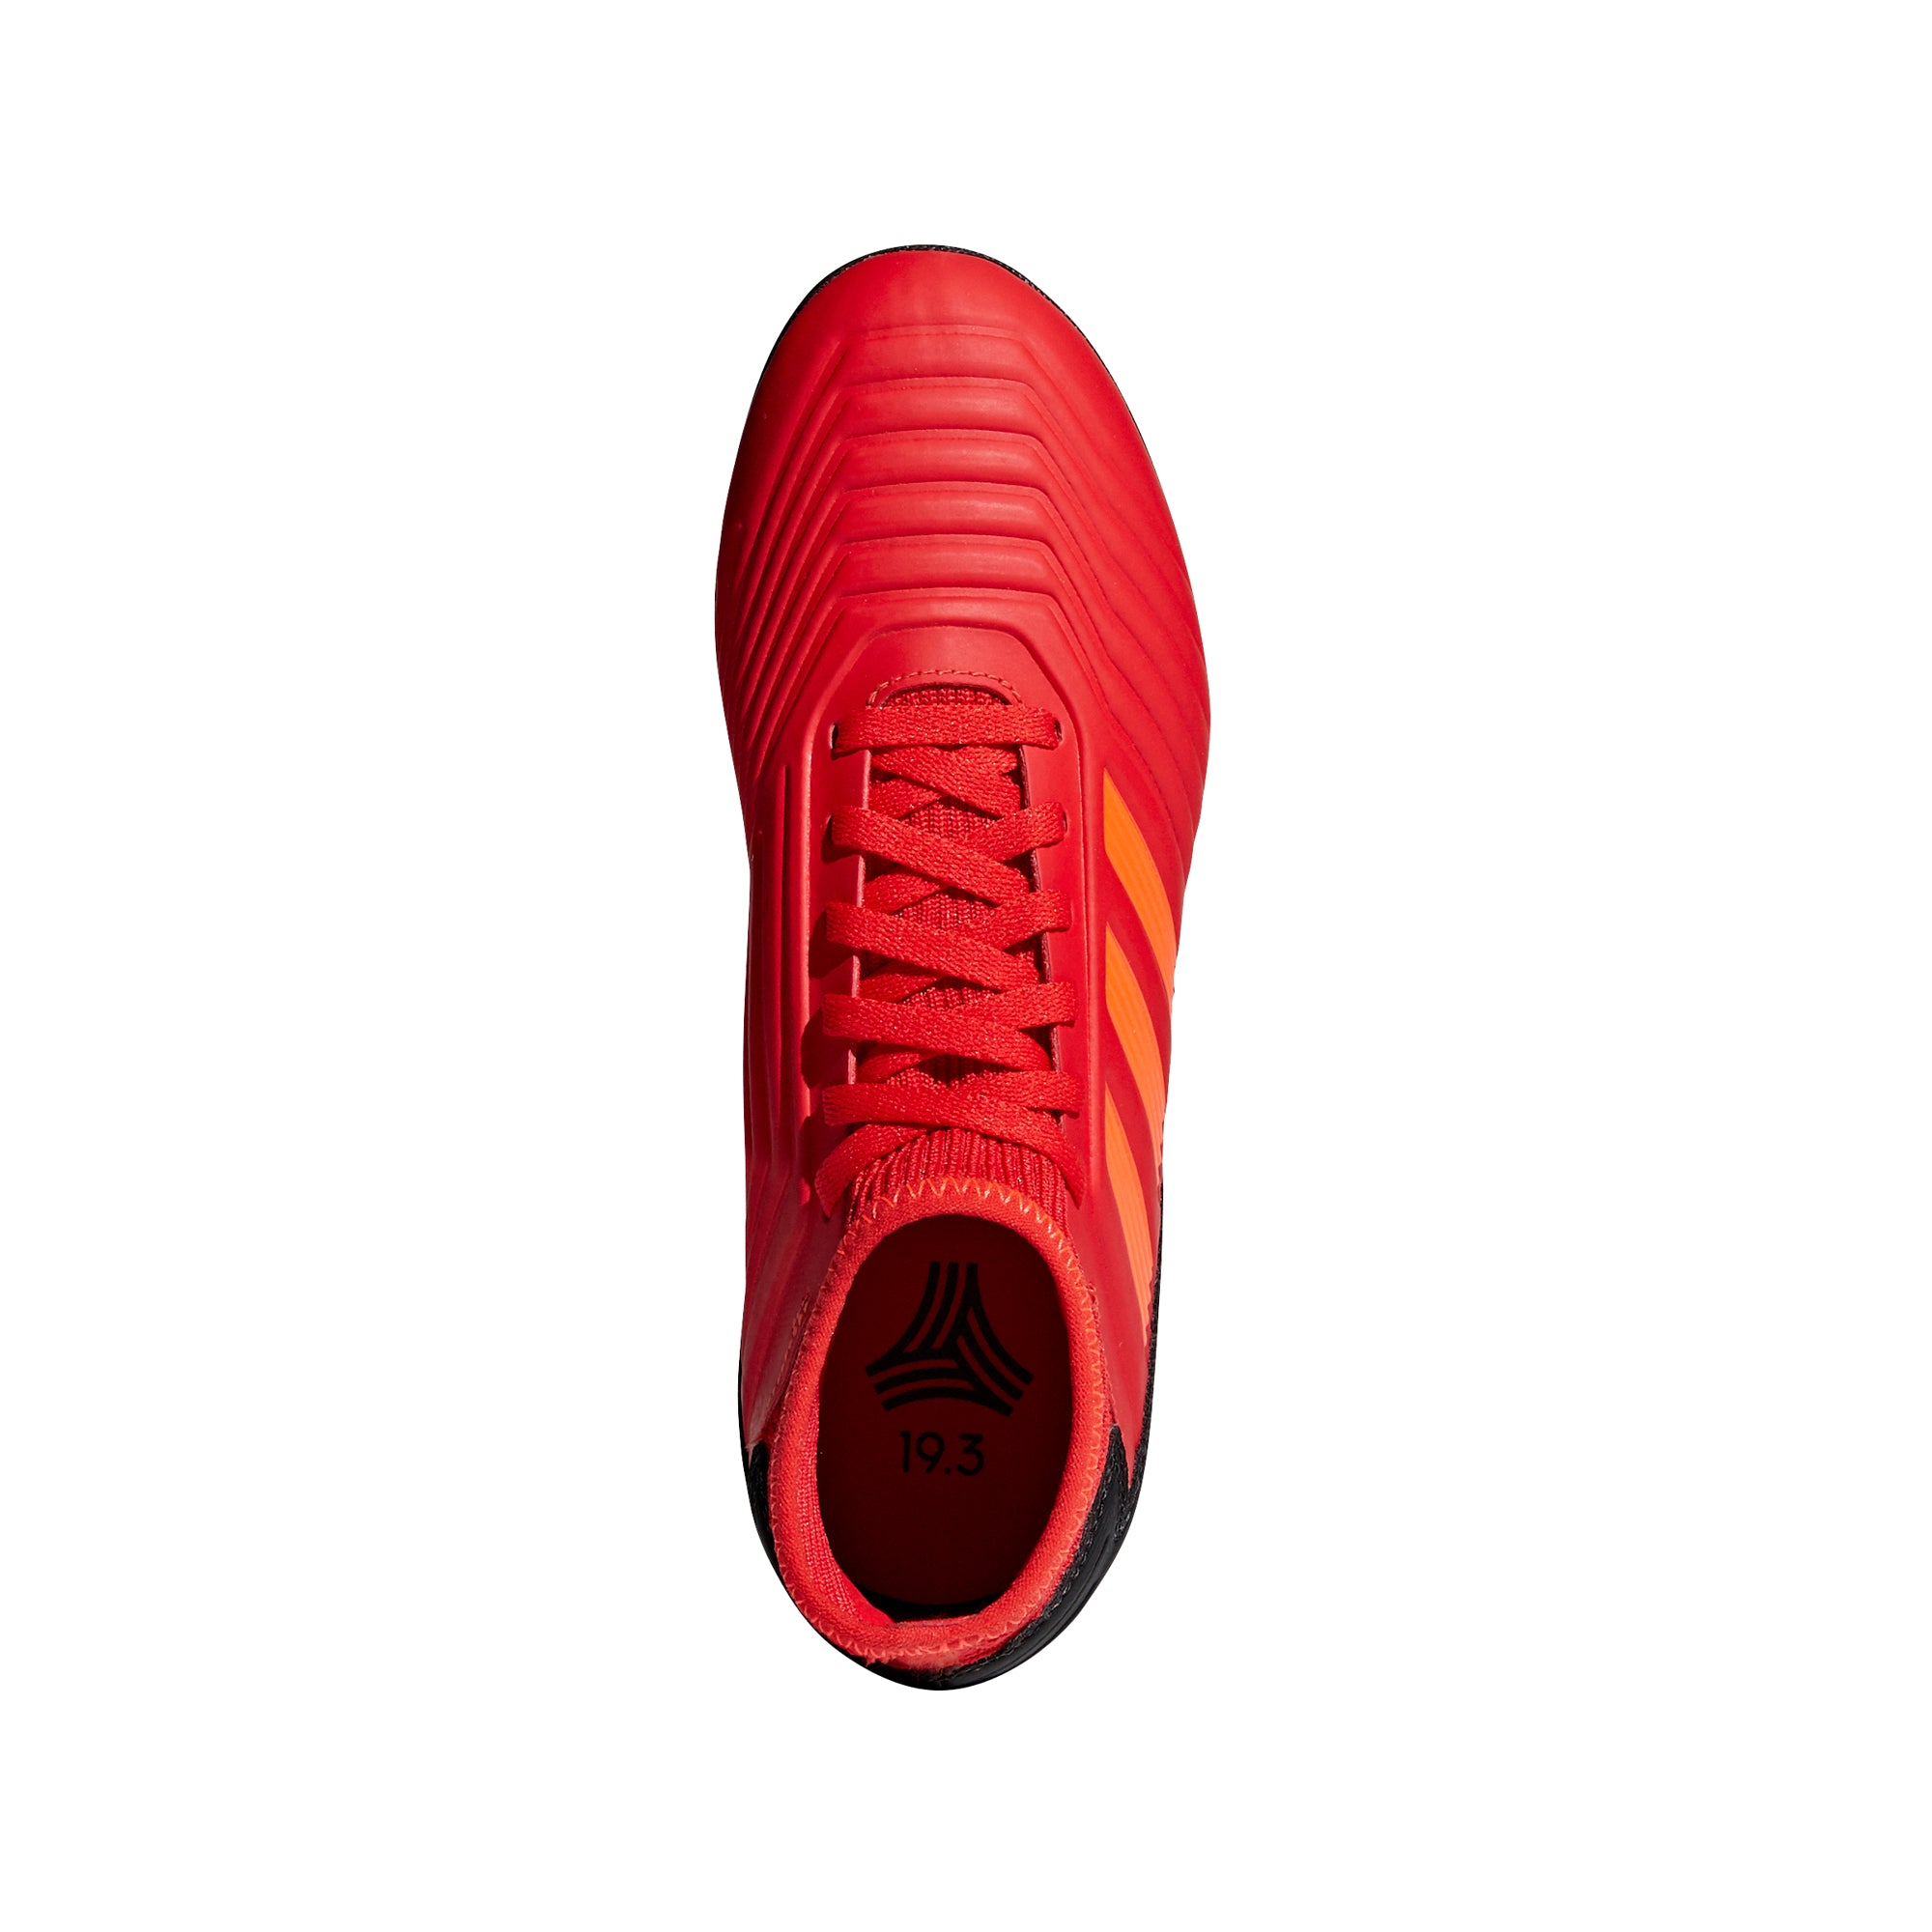 Adidas Predator 19.3 Turf Boot - Youth